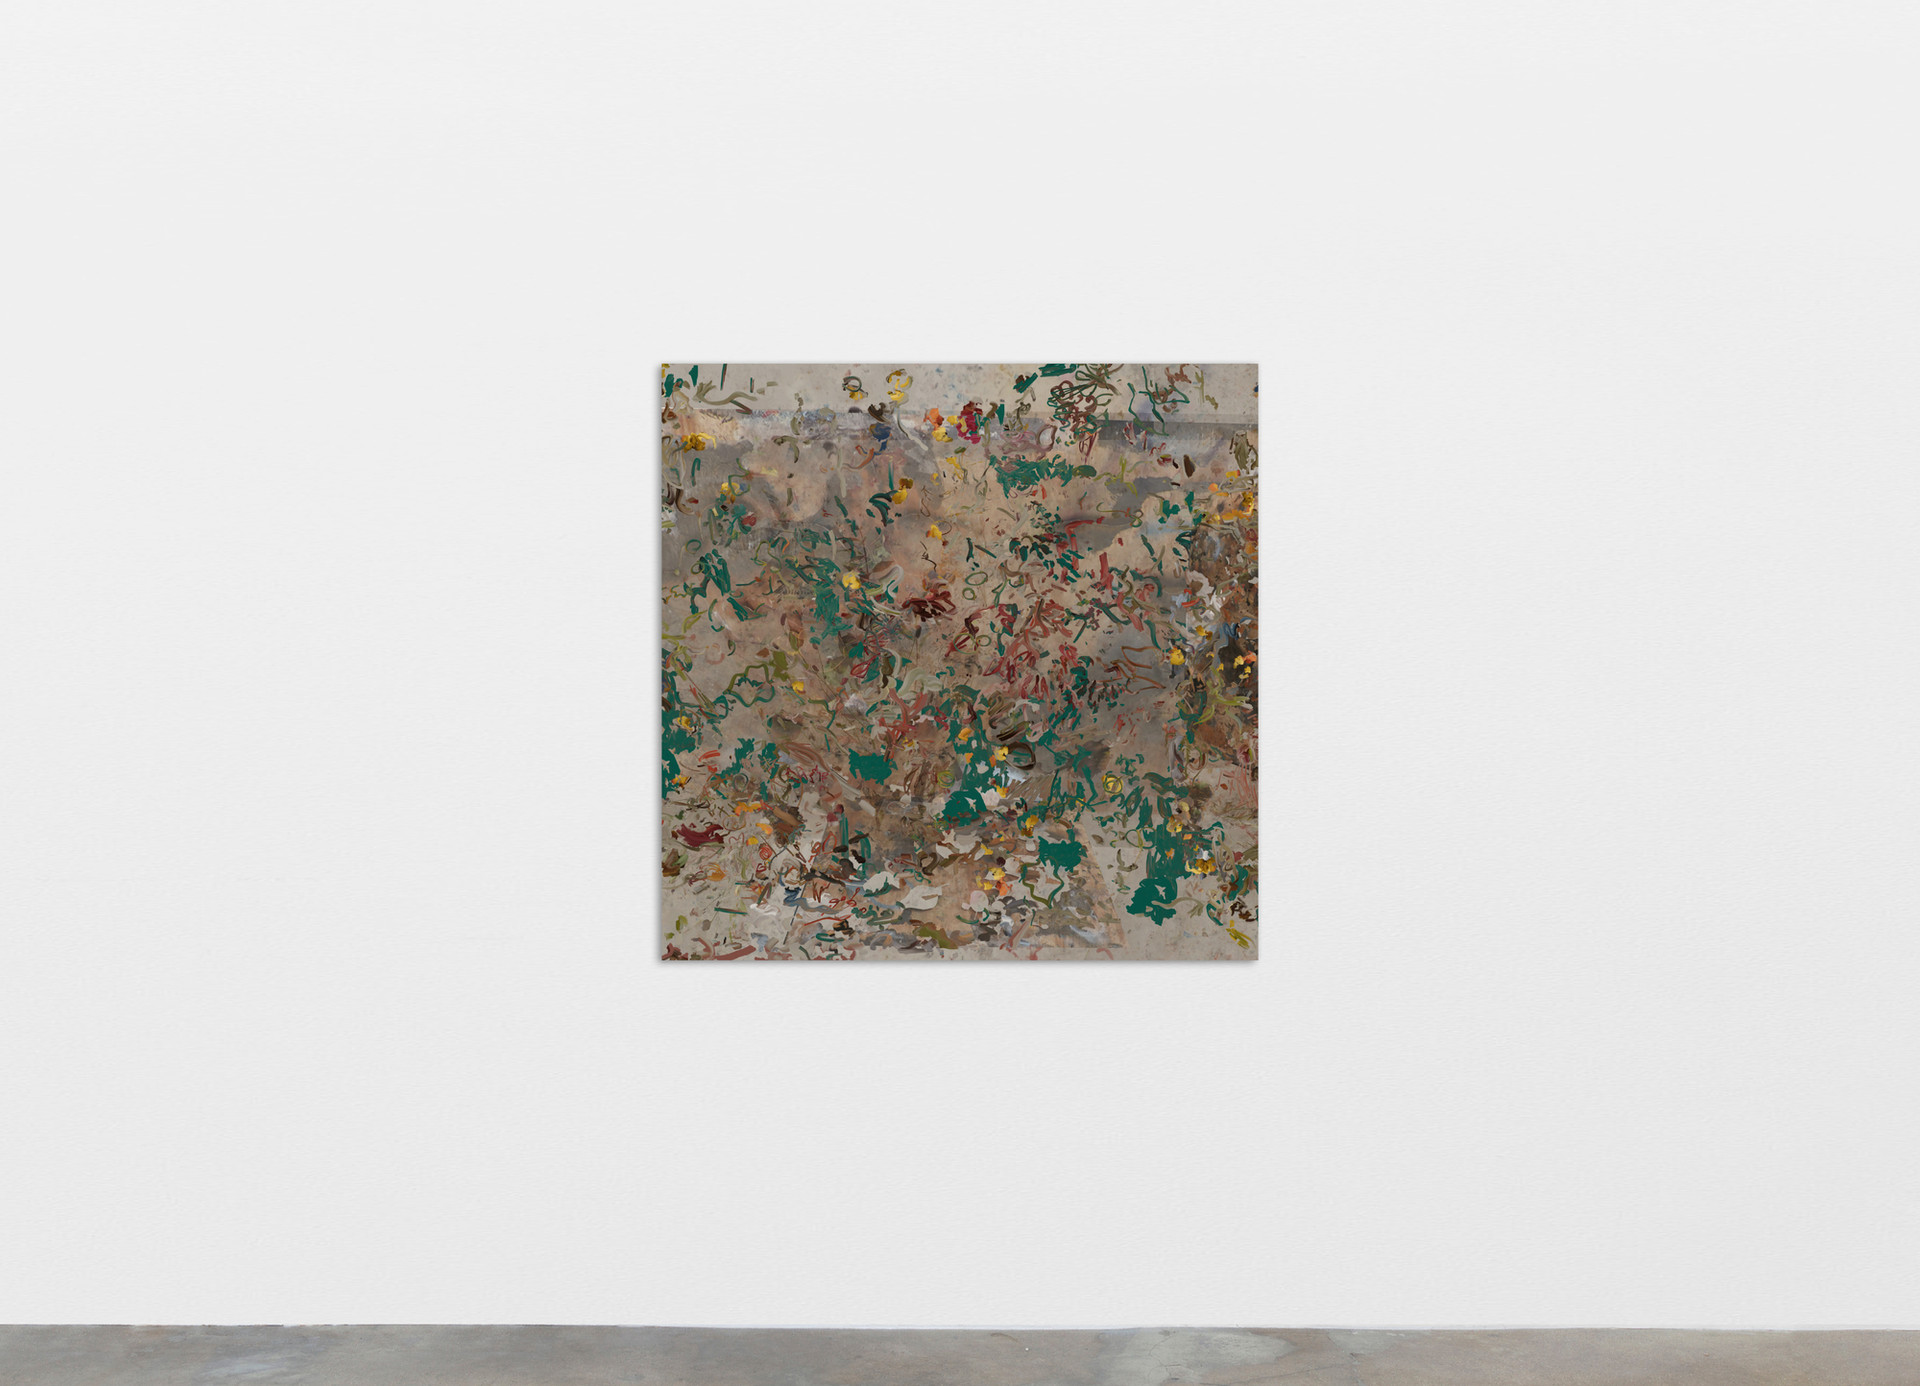 """Petra Cortright manifestazioni aeree_naked beach """"Now contact"""" AND """"up-to-date"""", 2020 Digital painting on anodized aluminum 83.82 x 83.82 cm 33 x 33 in"""